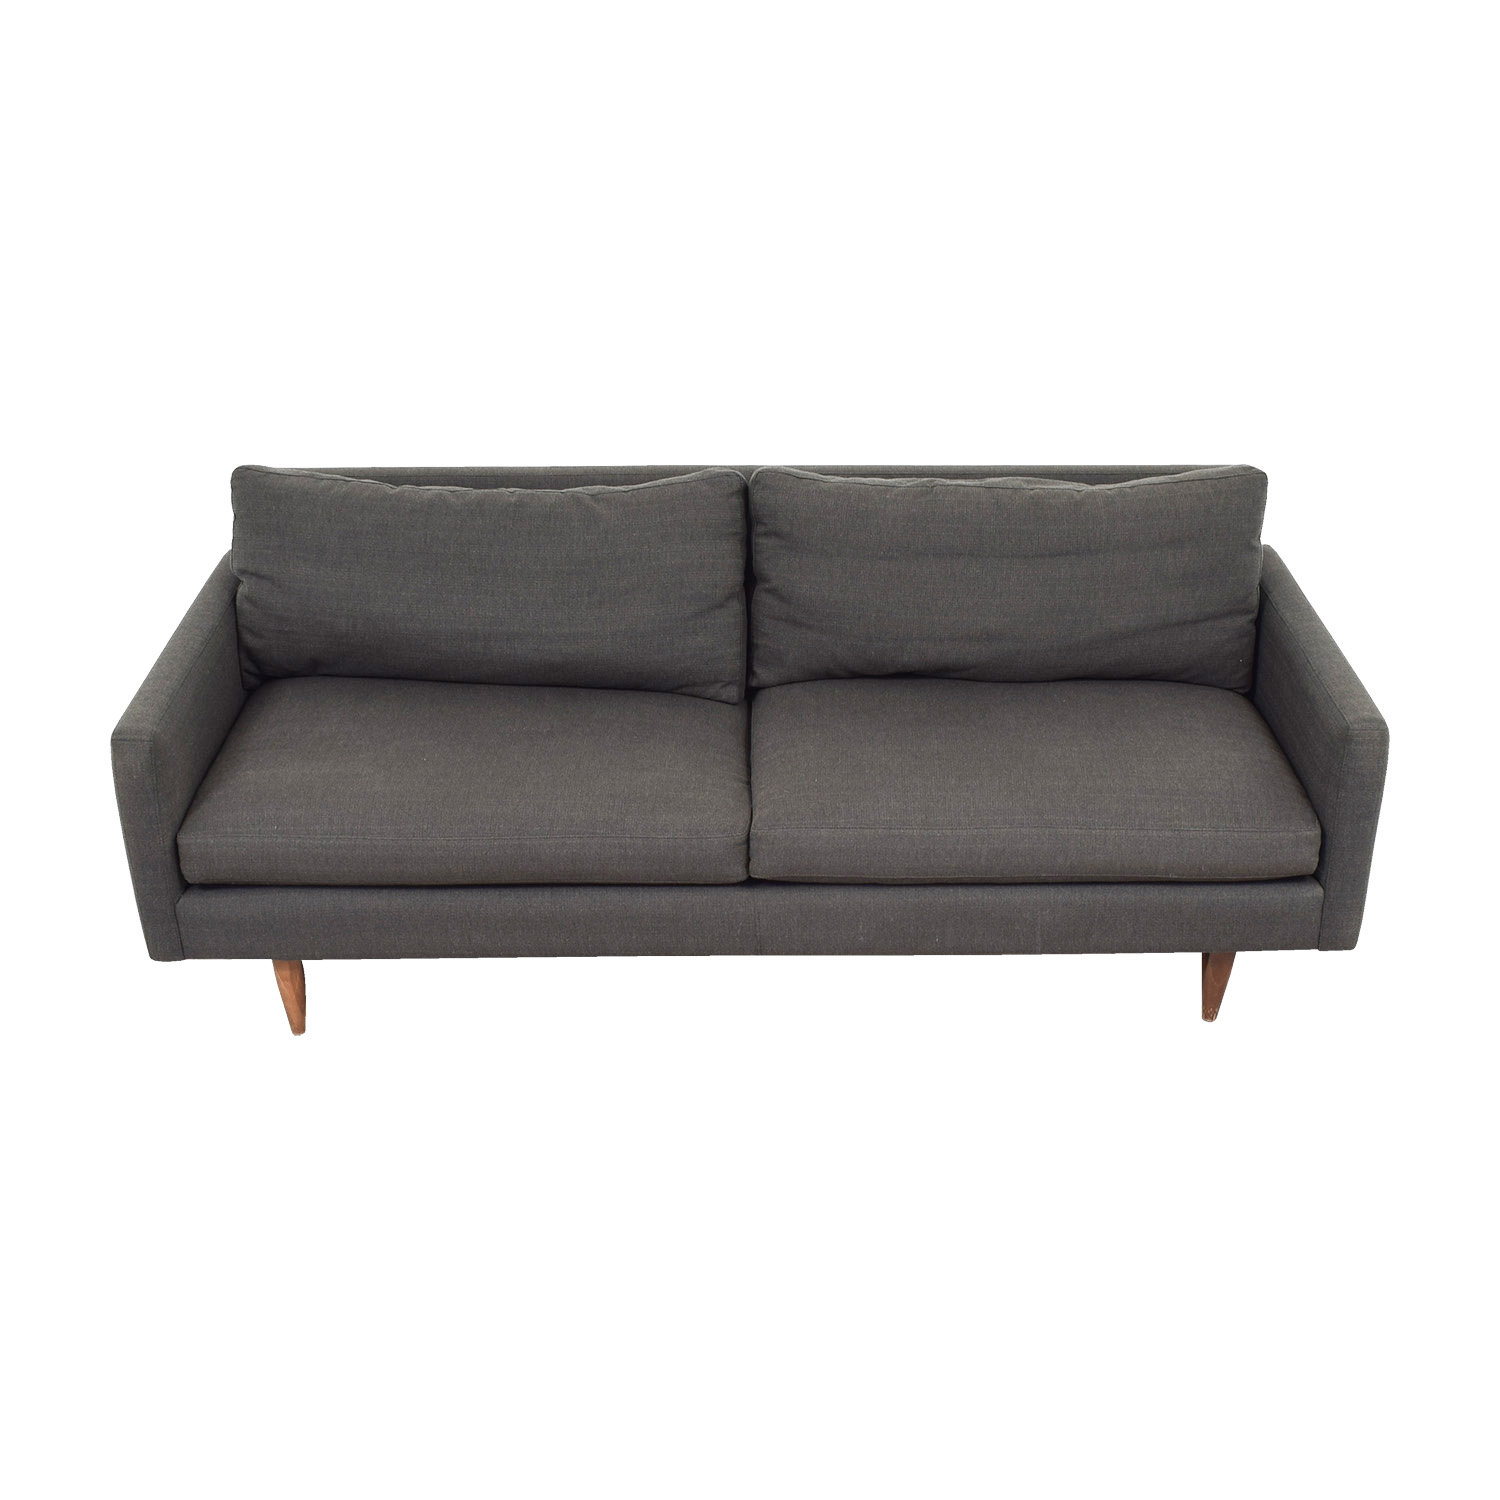 shop Room and Board Room & Board Jasper Grey Two-Cushion Sofa online